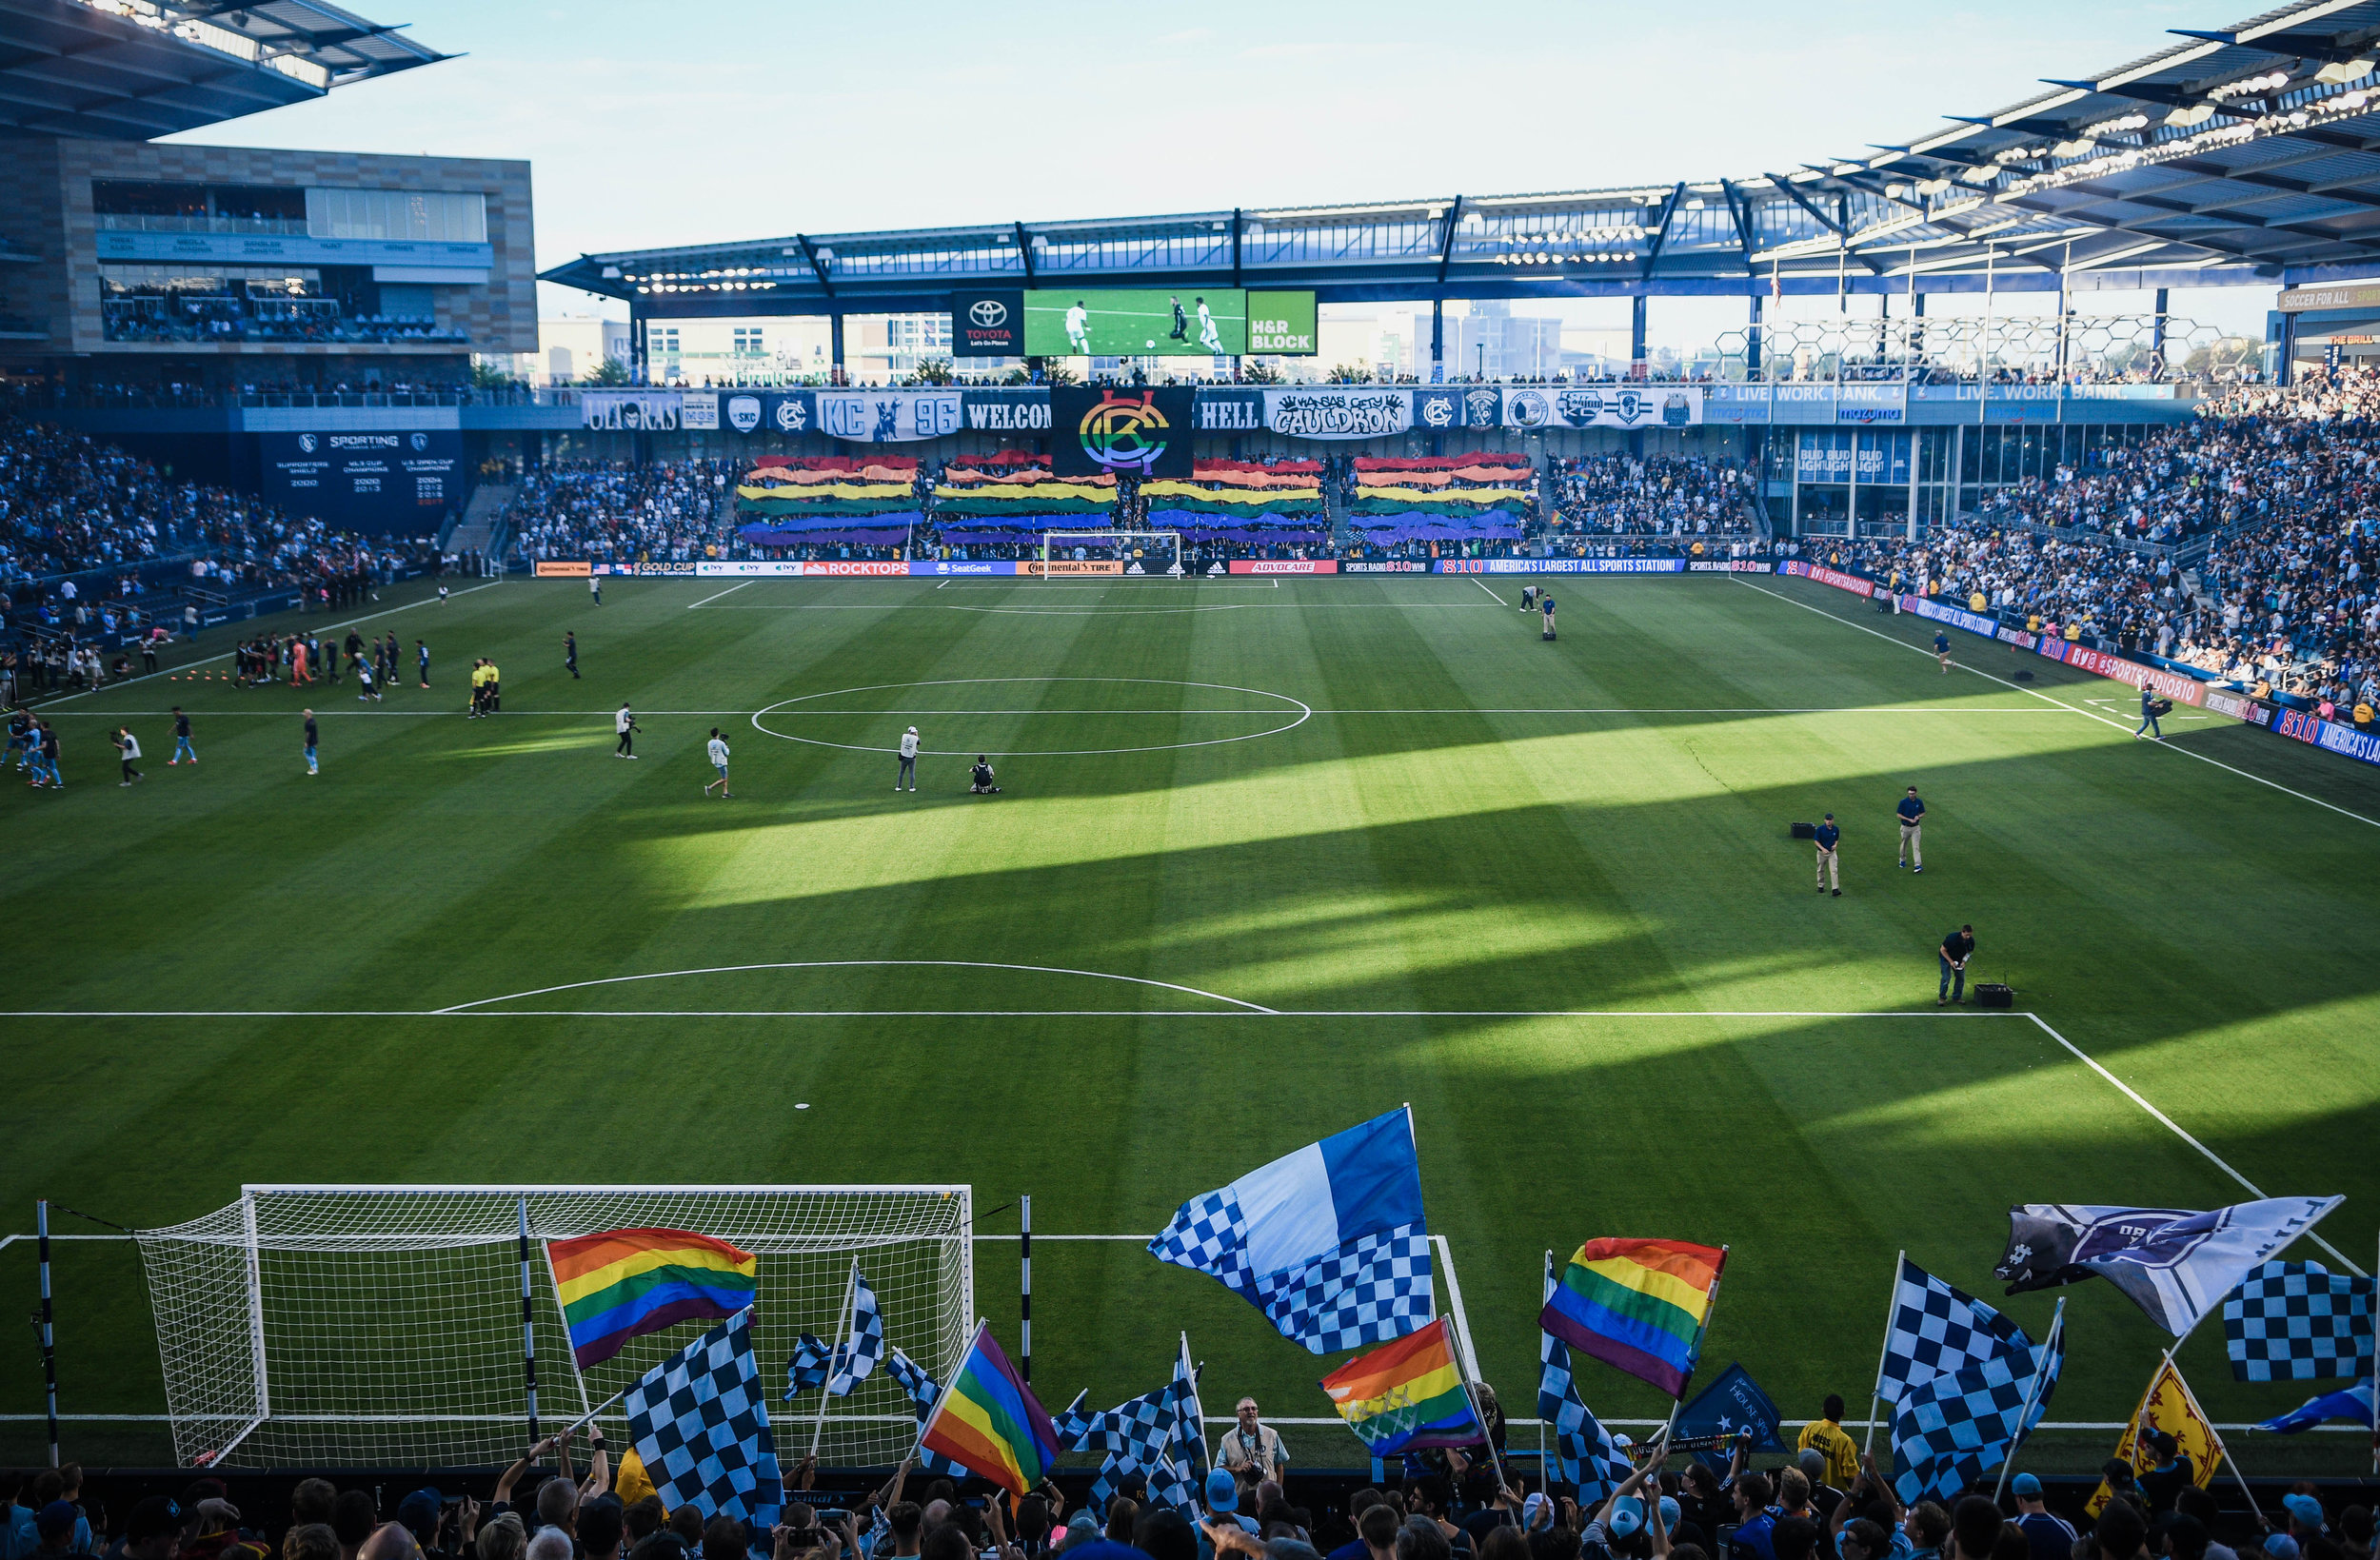 Kansas City Cauldron, Sporting KC's independent supporters group, displays a TIFO during the game against LA Galaxy on Wednesday, May 29, 2019 at Children's Mercy Park in Kansas City, Kansas. Sporting fell to the Galaxy 2-0.